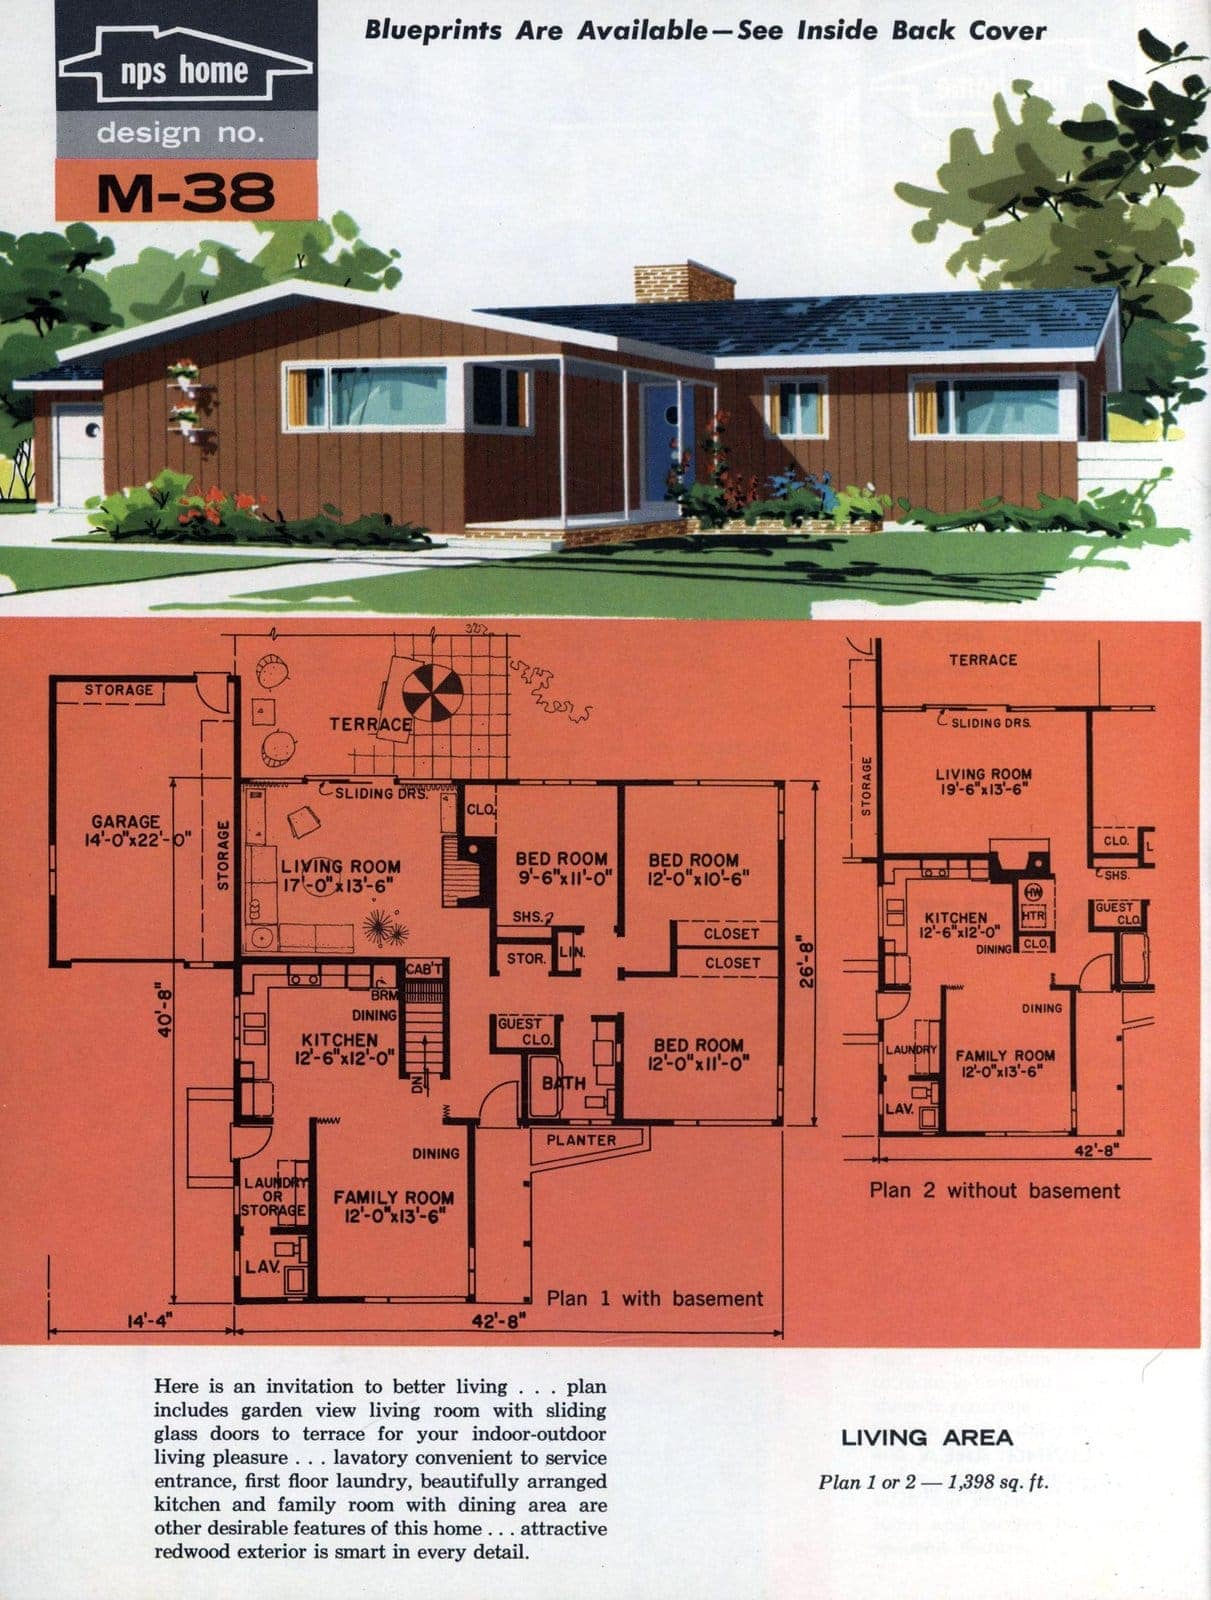 Vintage midcentury home plans from 1963 (8)